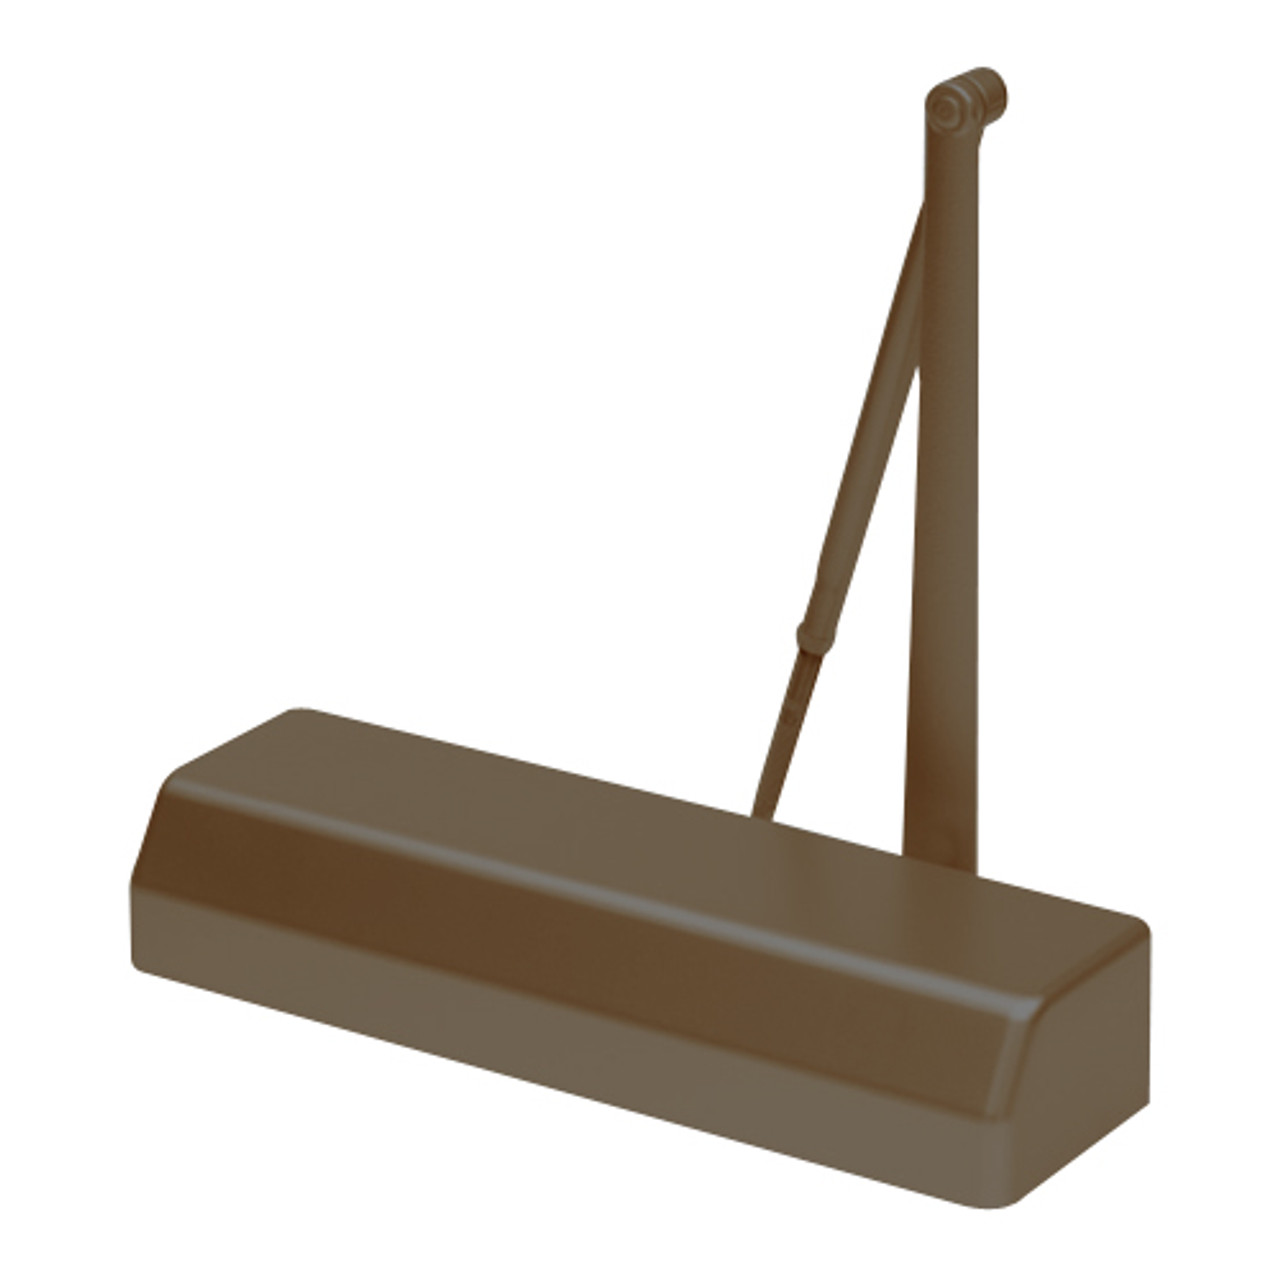 D-4550-690 Stanley D-4550 Surface Closers with Standard Parallel and Top Jamb Arm in Statuary Bronze Finish